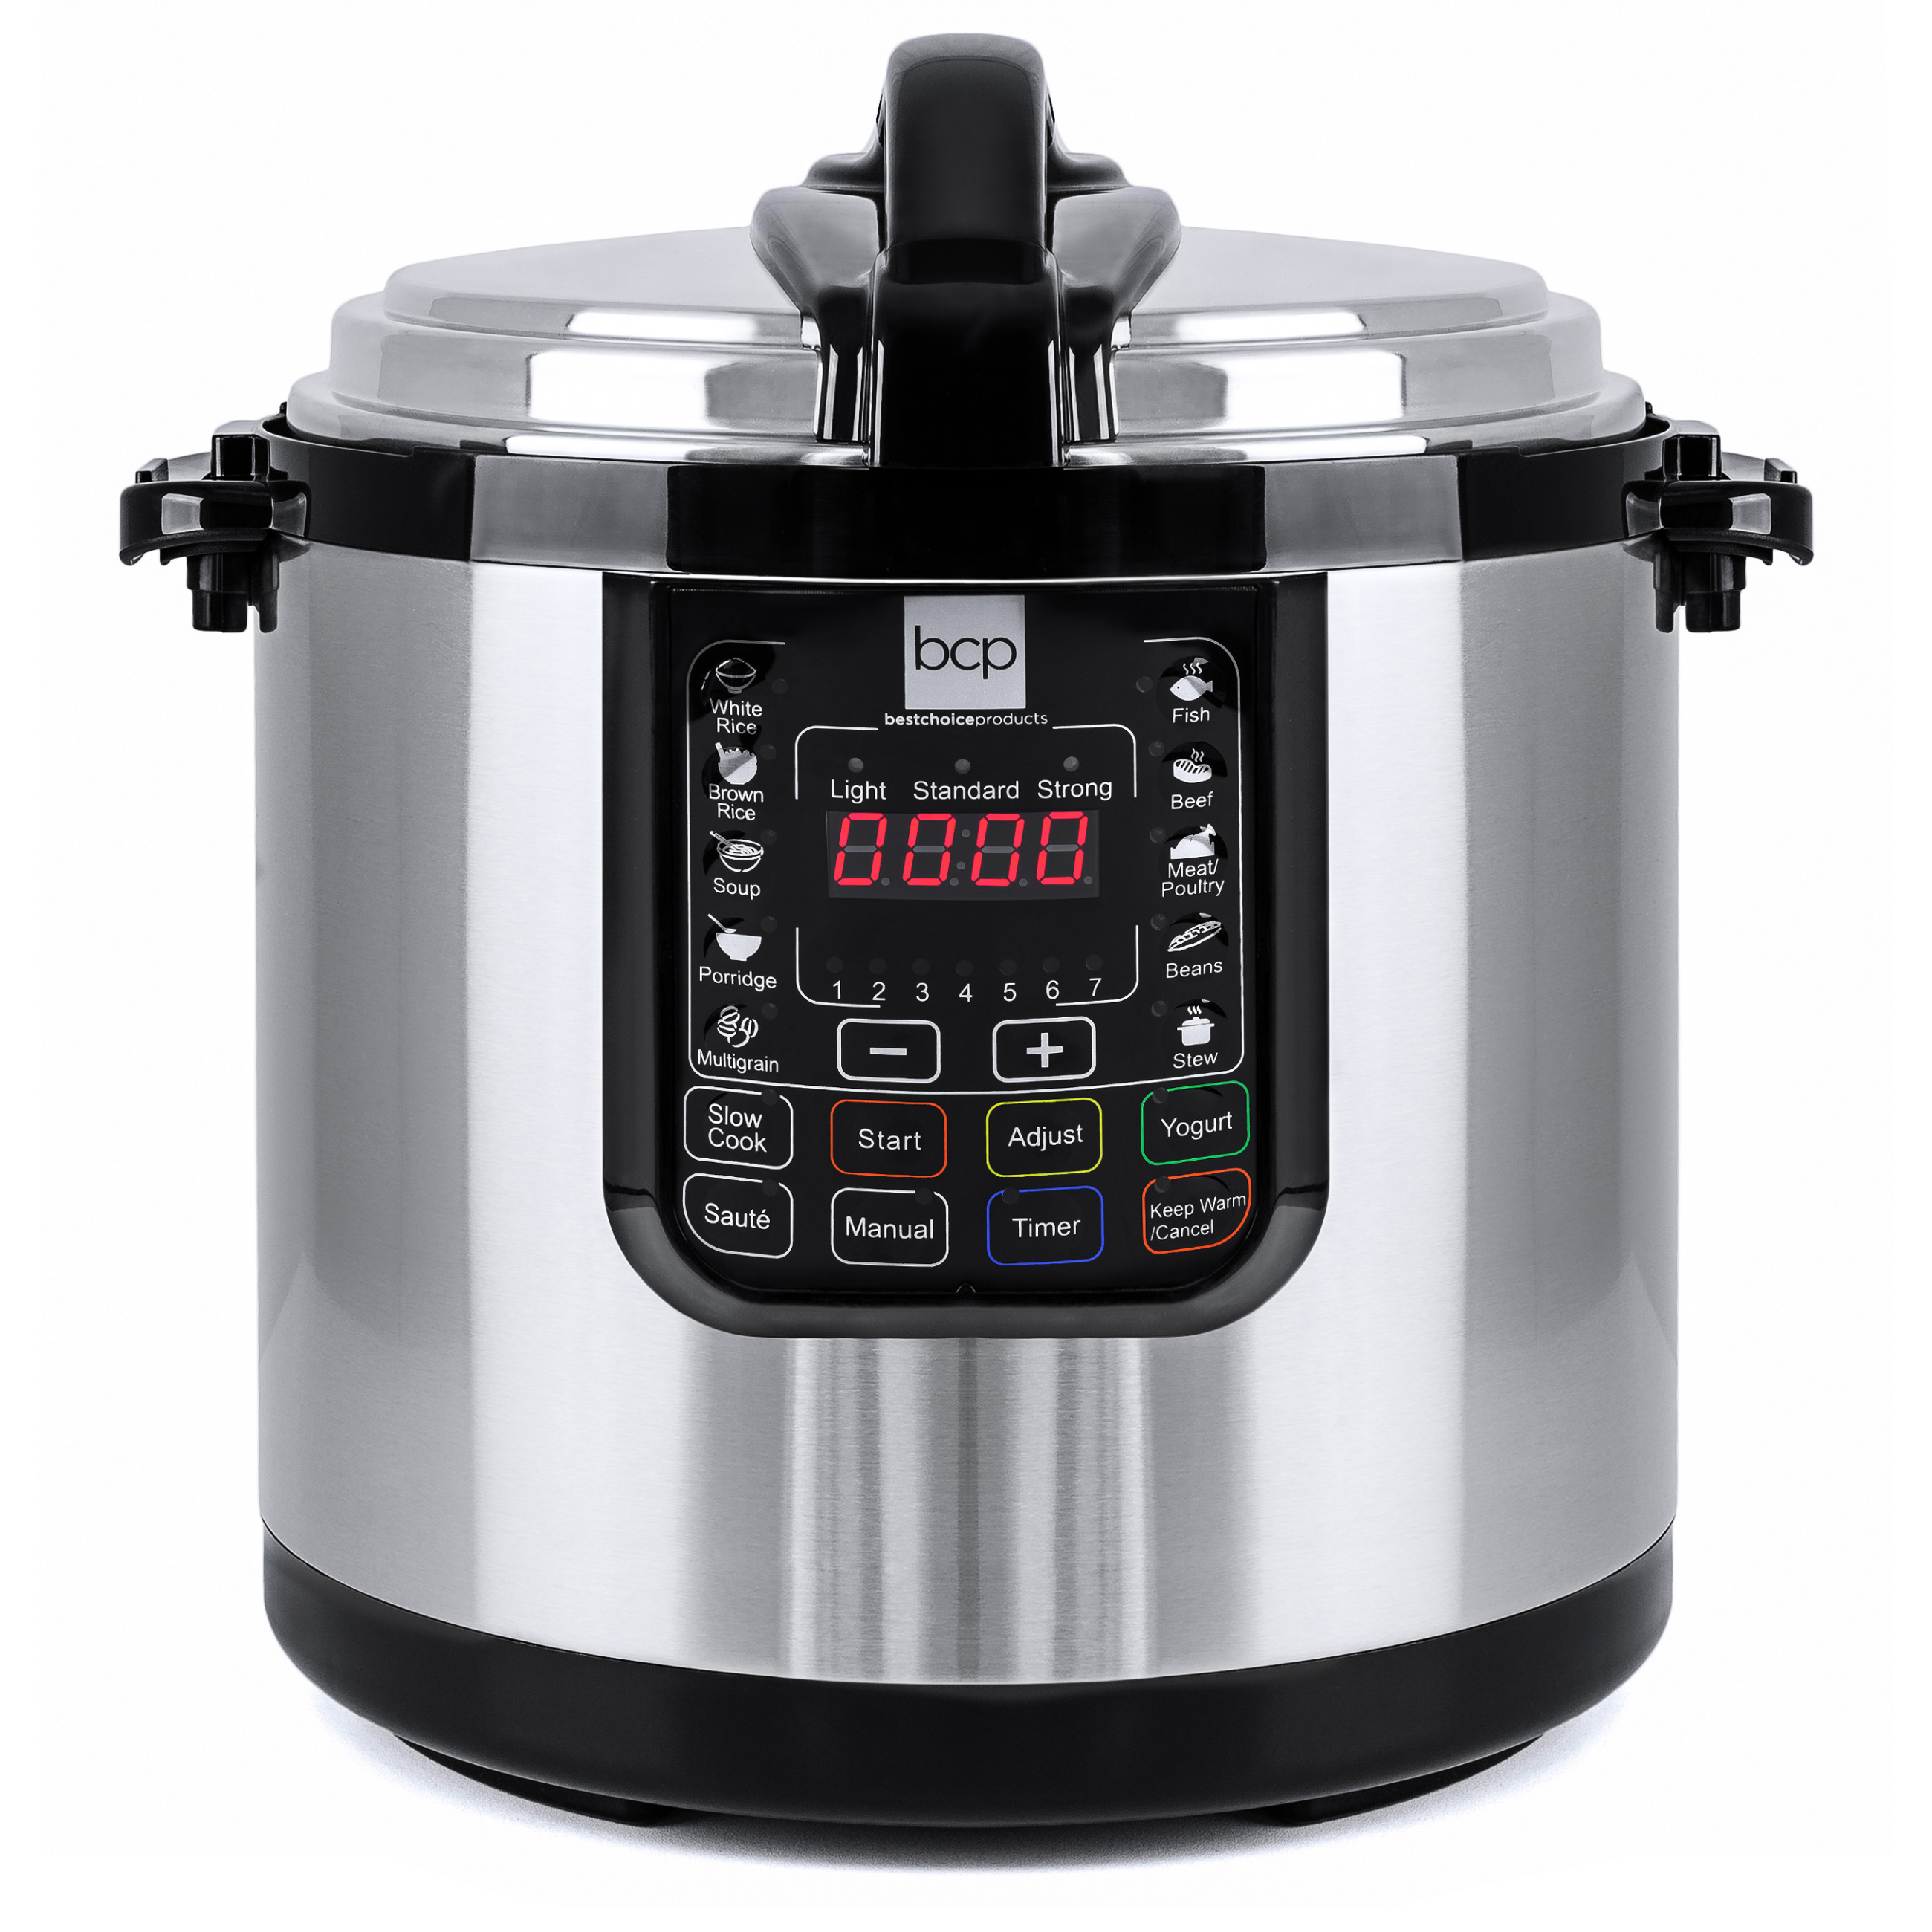 Best Choice Products 12-Liter 1000 Watt Stainless Steel Electric Pressure Cooker W/ LED